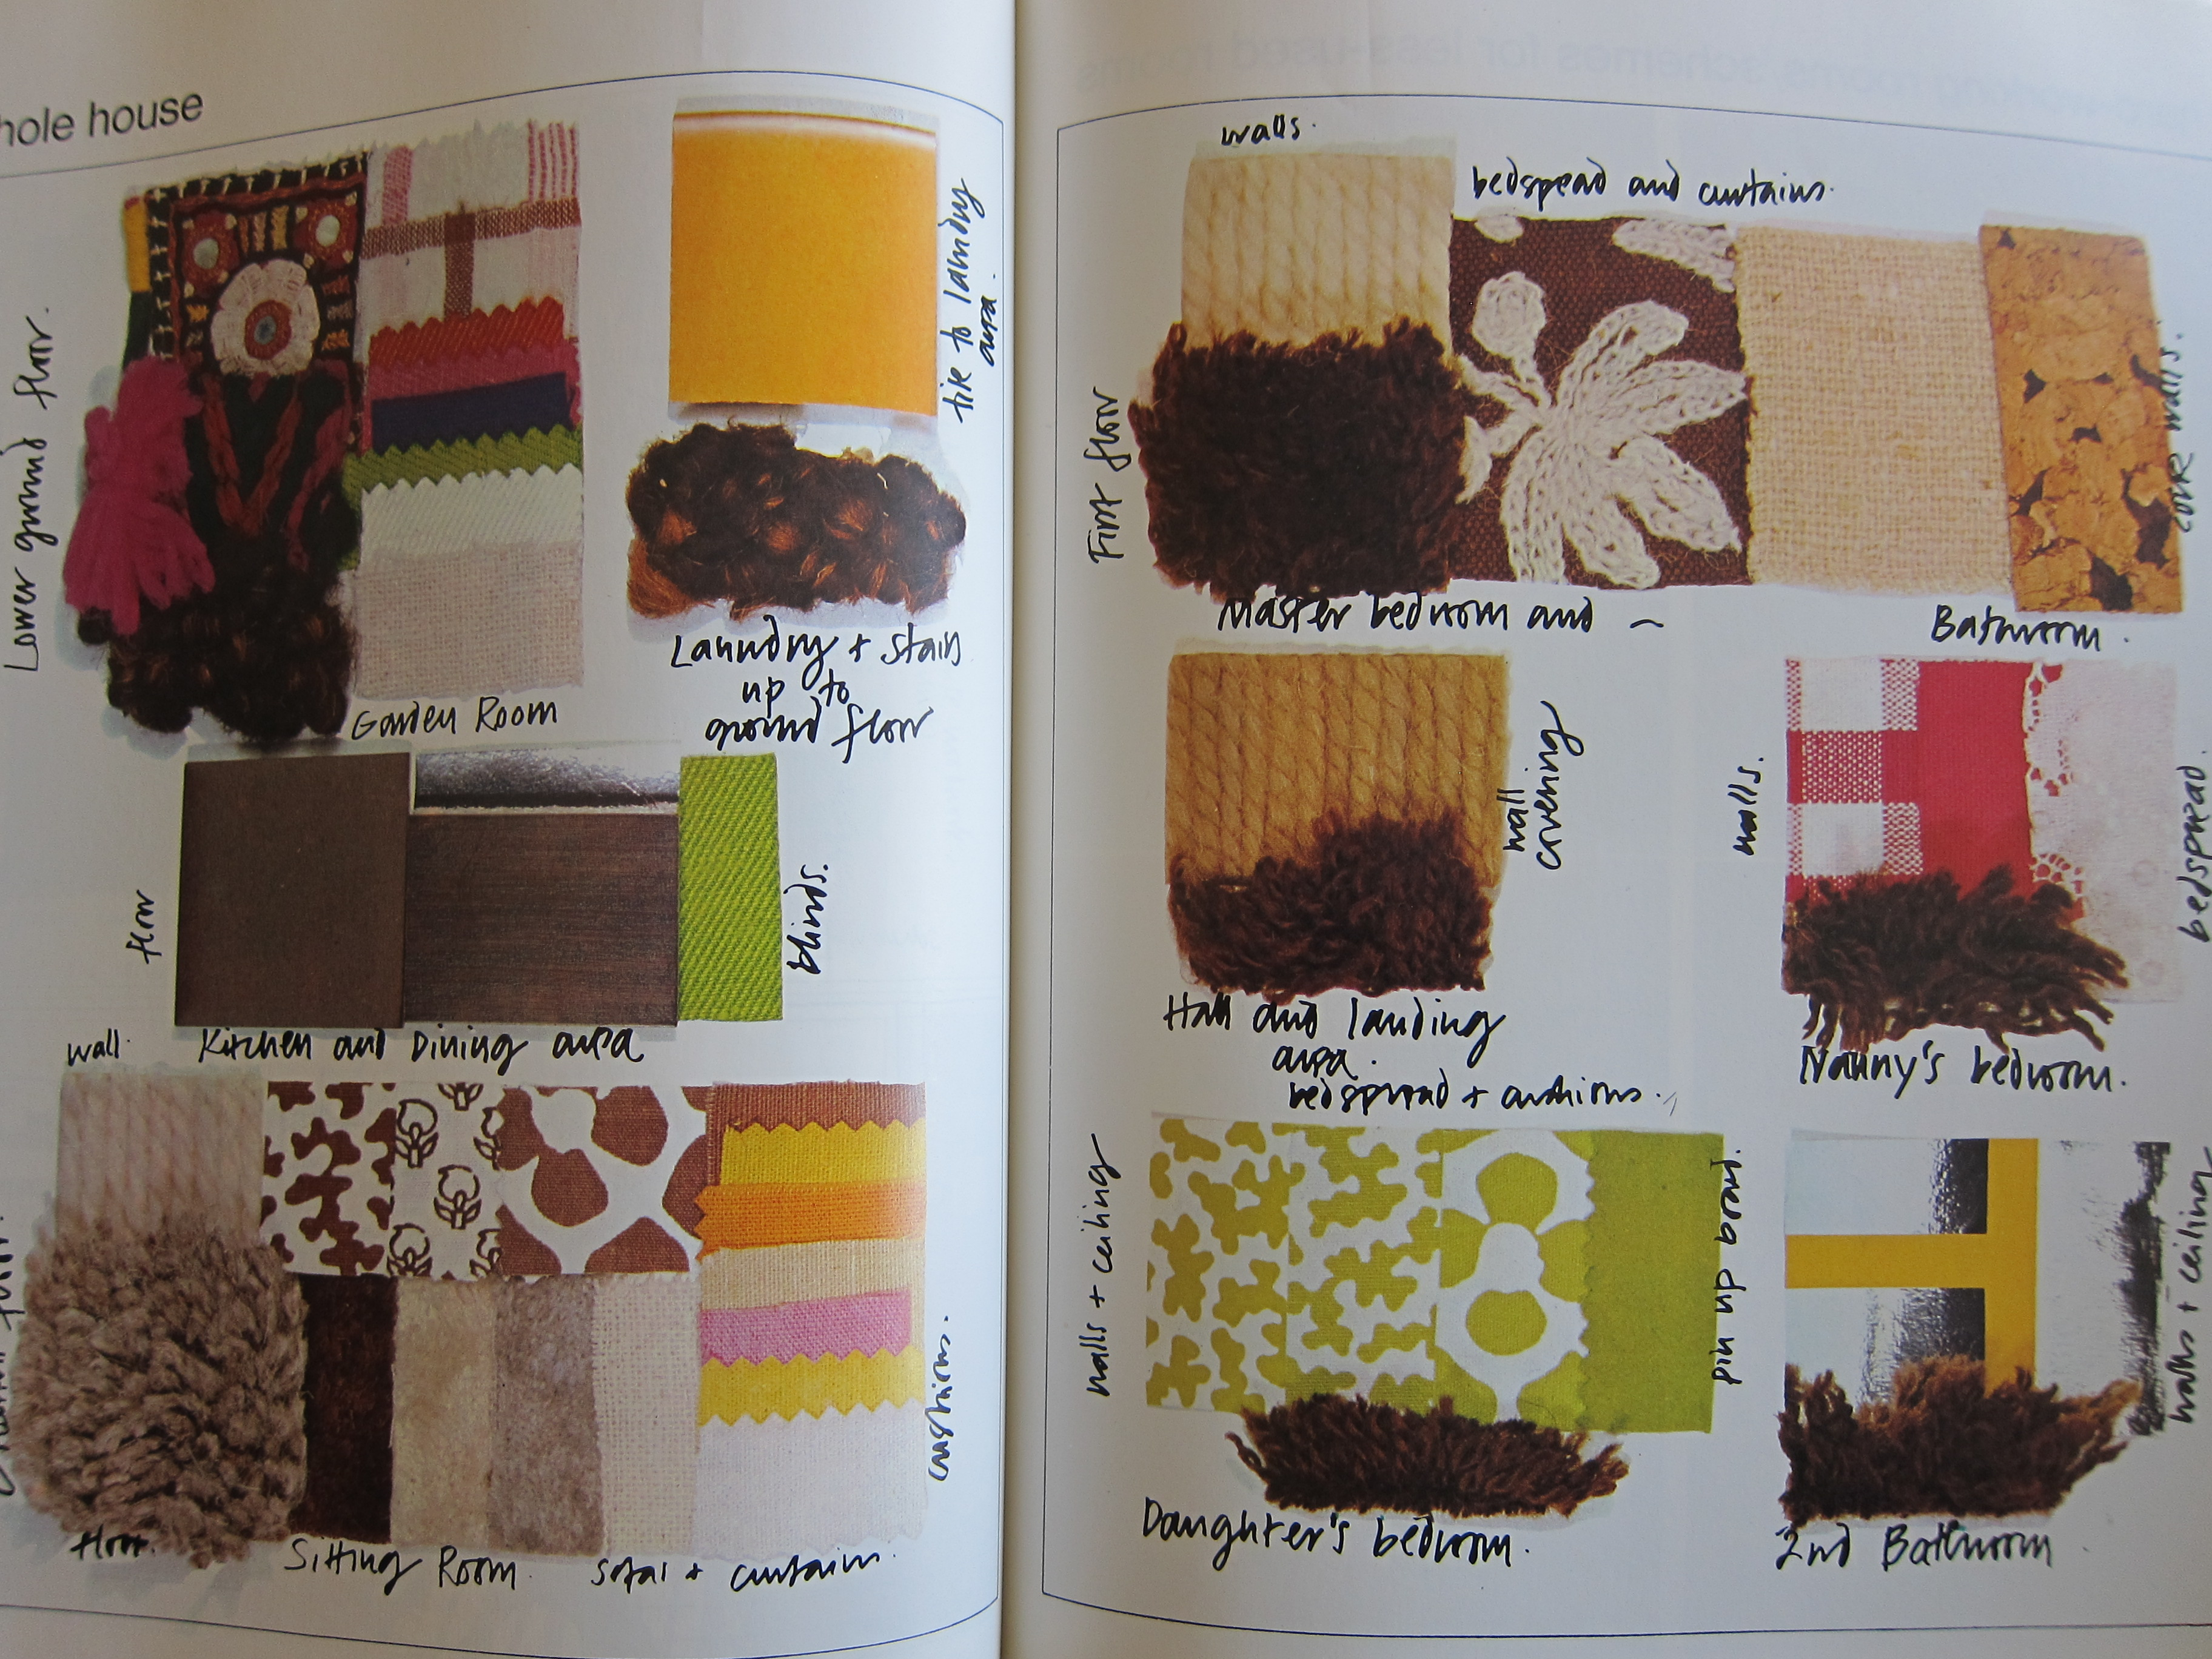 Interior design time warp 1 the 1970s interiors for for Interior design with waste material